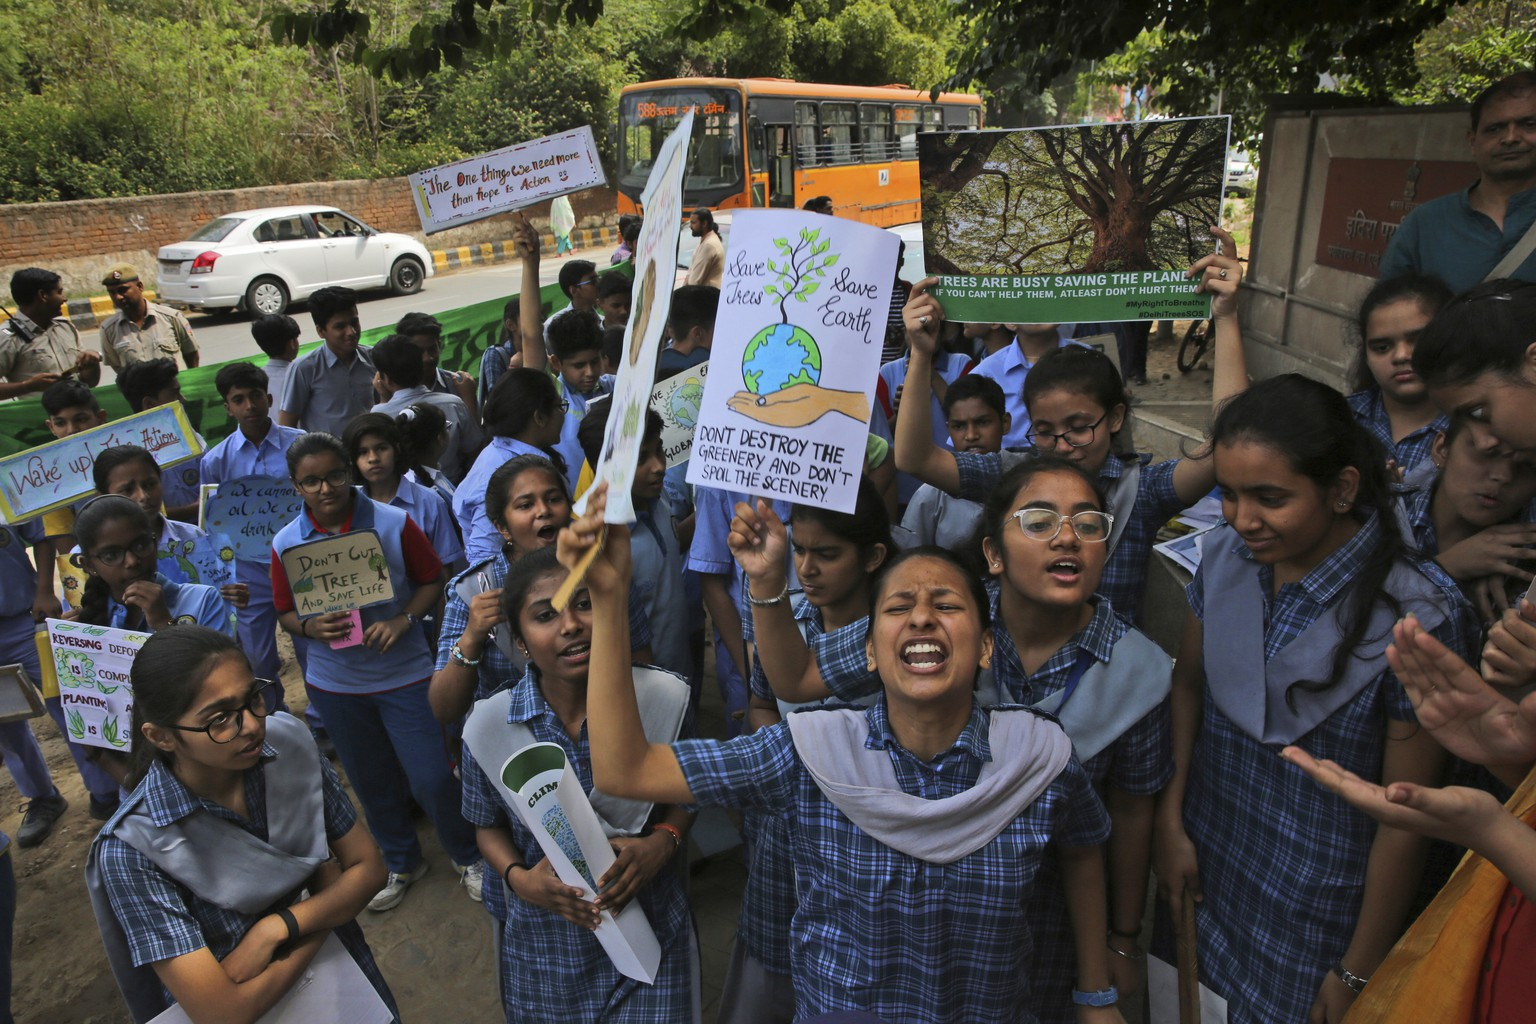 Students from different schools voice their concerns outside Indian Ministry of Environment, Forest and Climate Change during a protest in New Delhi, India, Friday, April 12, 2019. Students in more than 80 countries and territories worldwide plan to skip class Friday in protest over their governments' failure to act against climate change. The coordinated 'school strike' was inspired by 16-year-old activist Greta Thunberg, who began holding solitary demonstrations outside the Swedish parliament last year. (AP Photo/Manish Swarup)